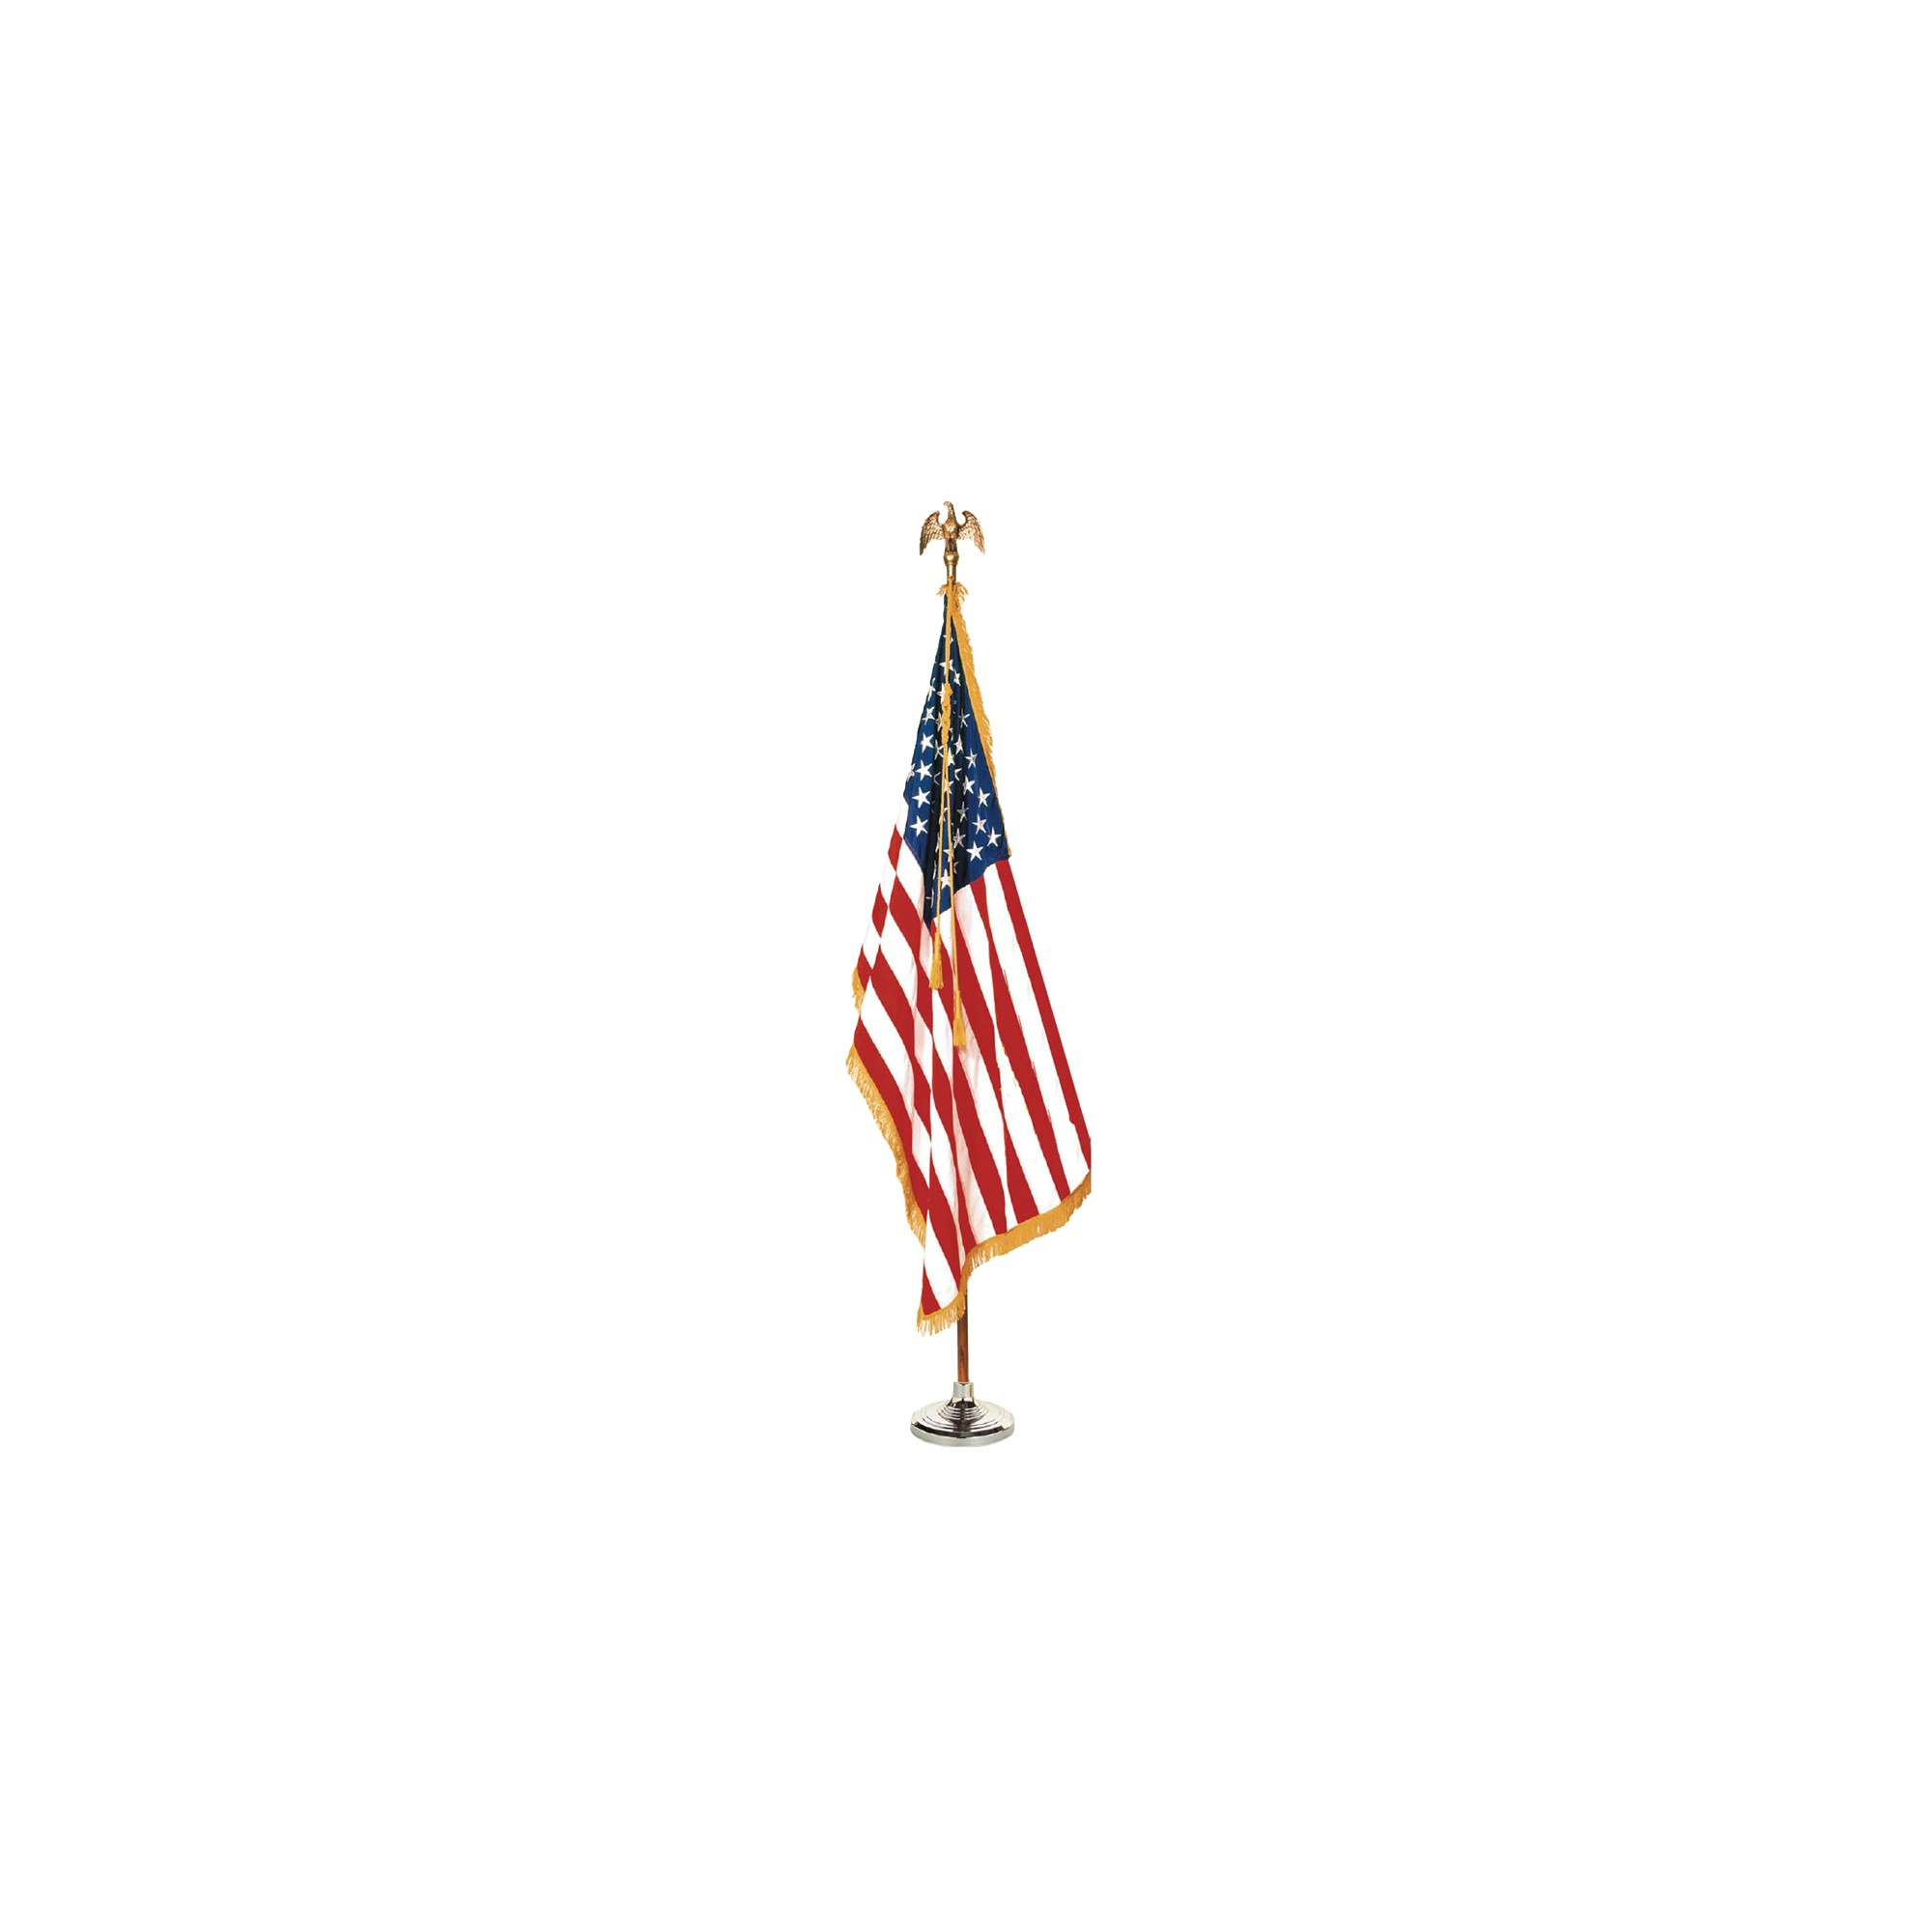 Halloween Colonial Nyl-Glo US Flag Set - 5' x 8'